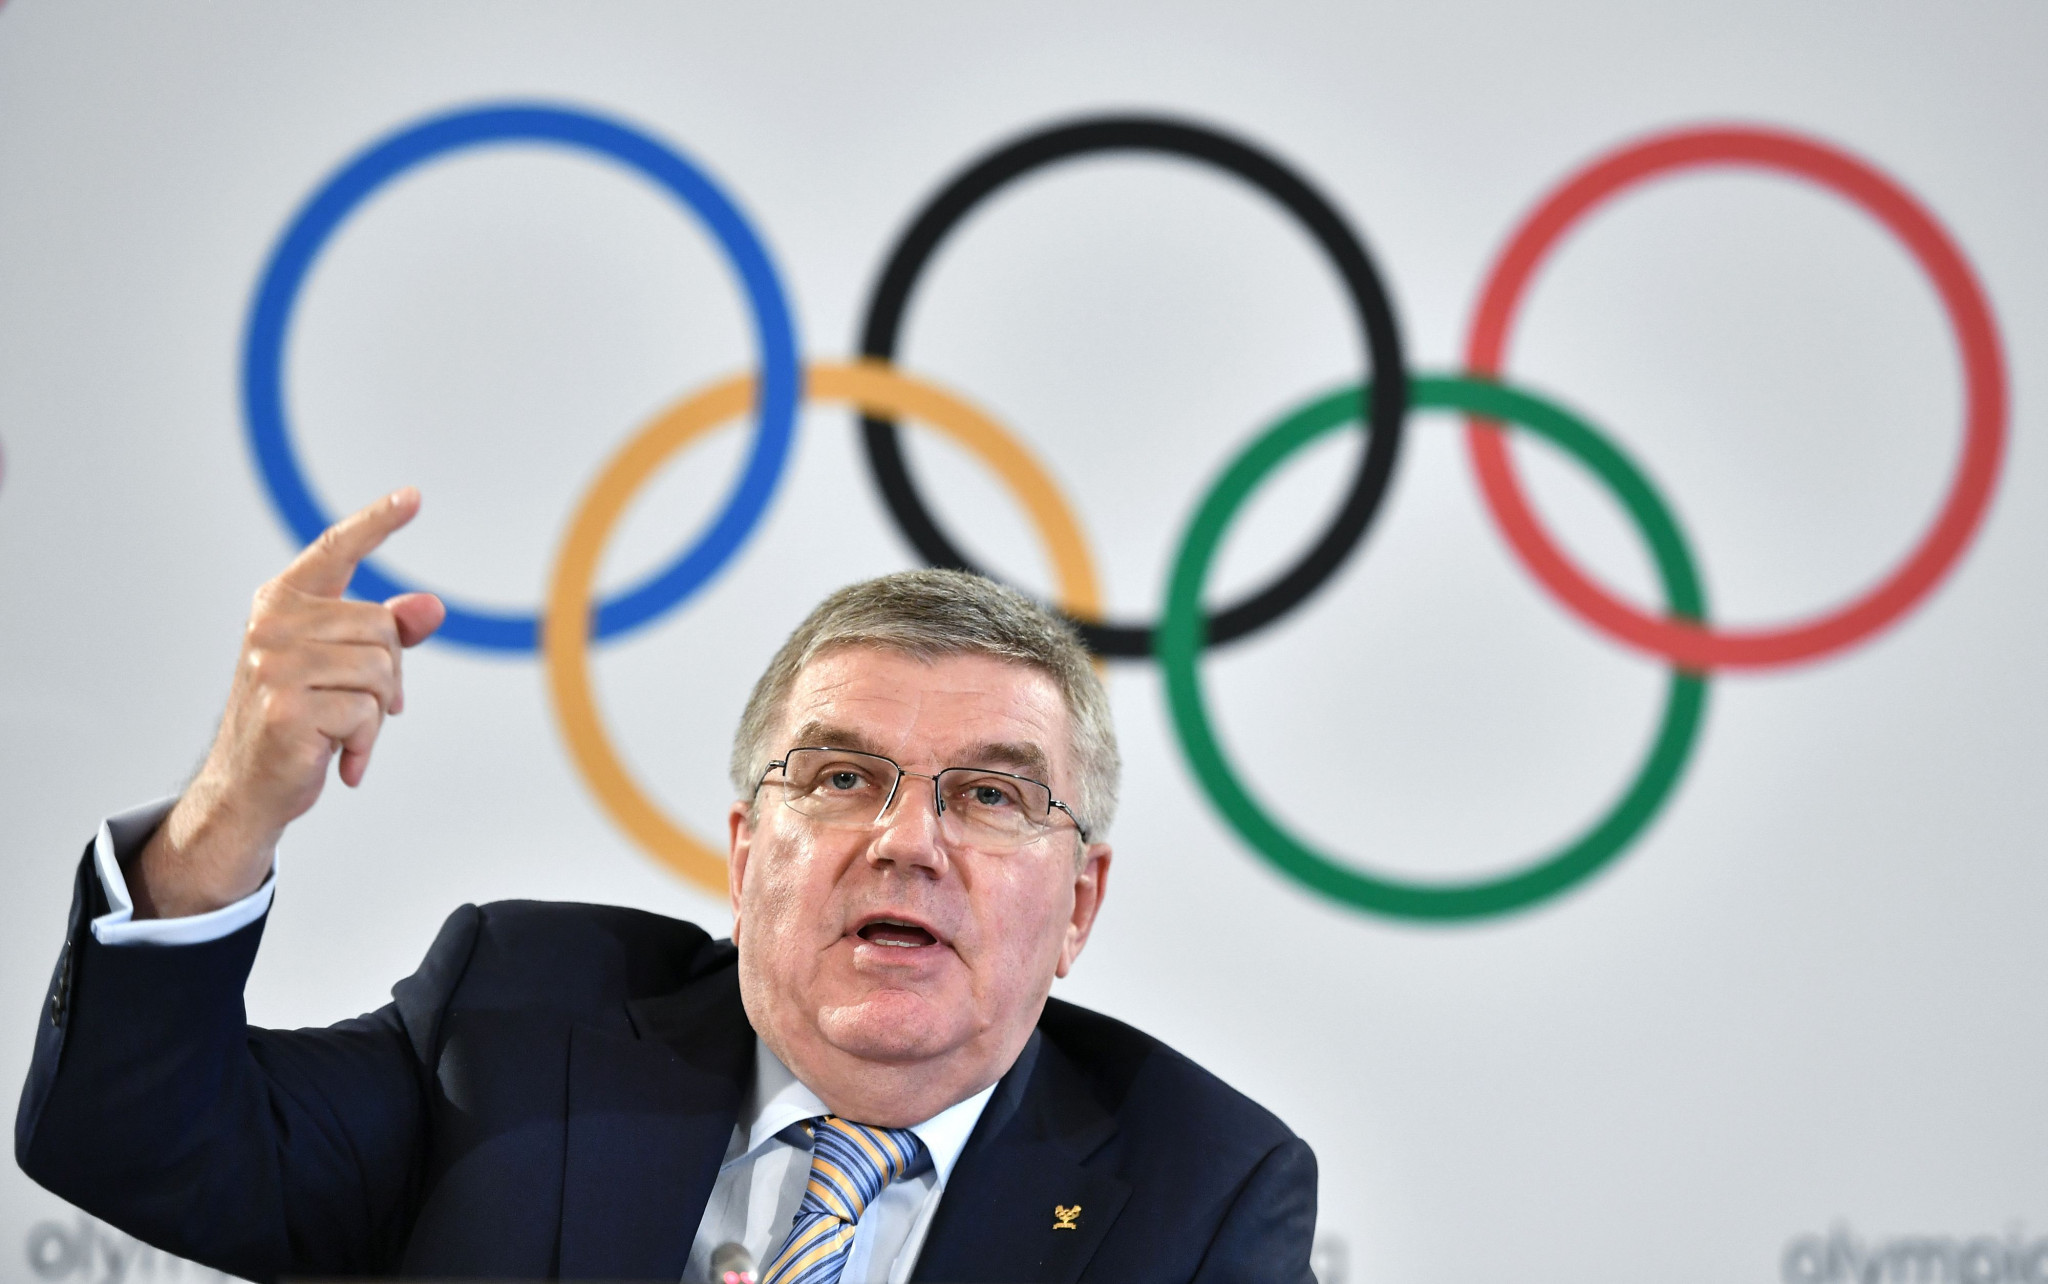 IOC President Thomas Bach has encouraged Bulgaria to bid for the 2024 Games ©Getty Images